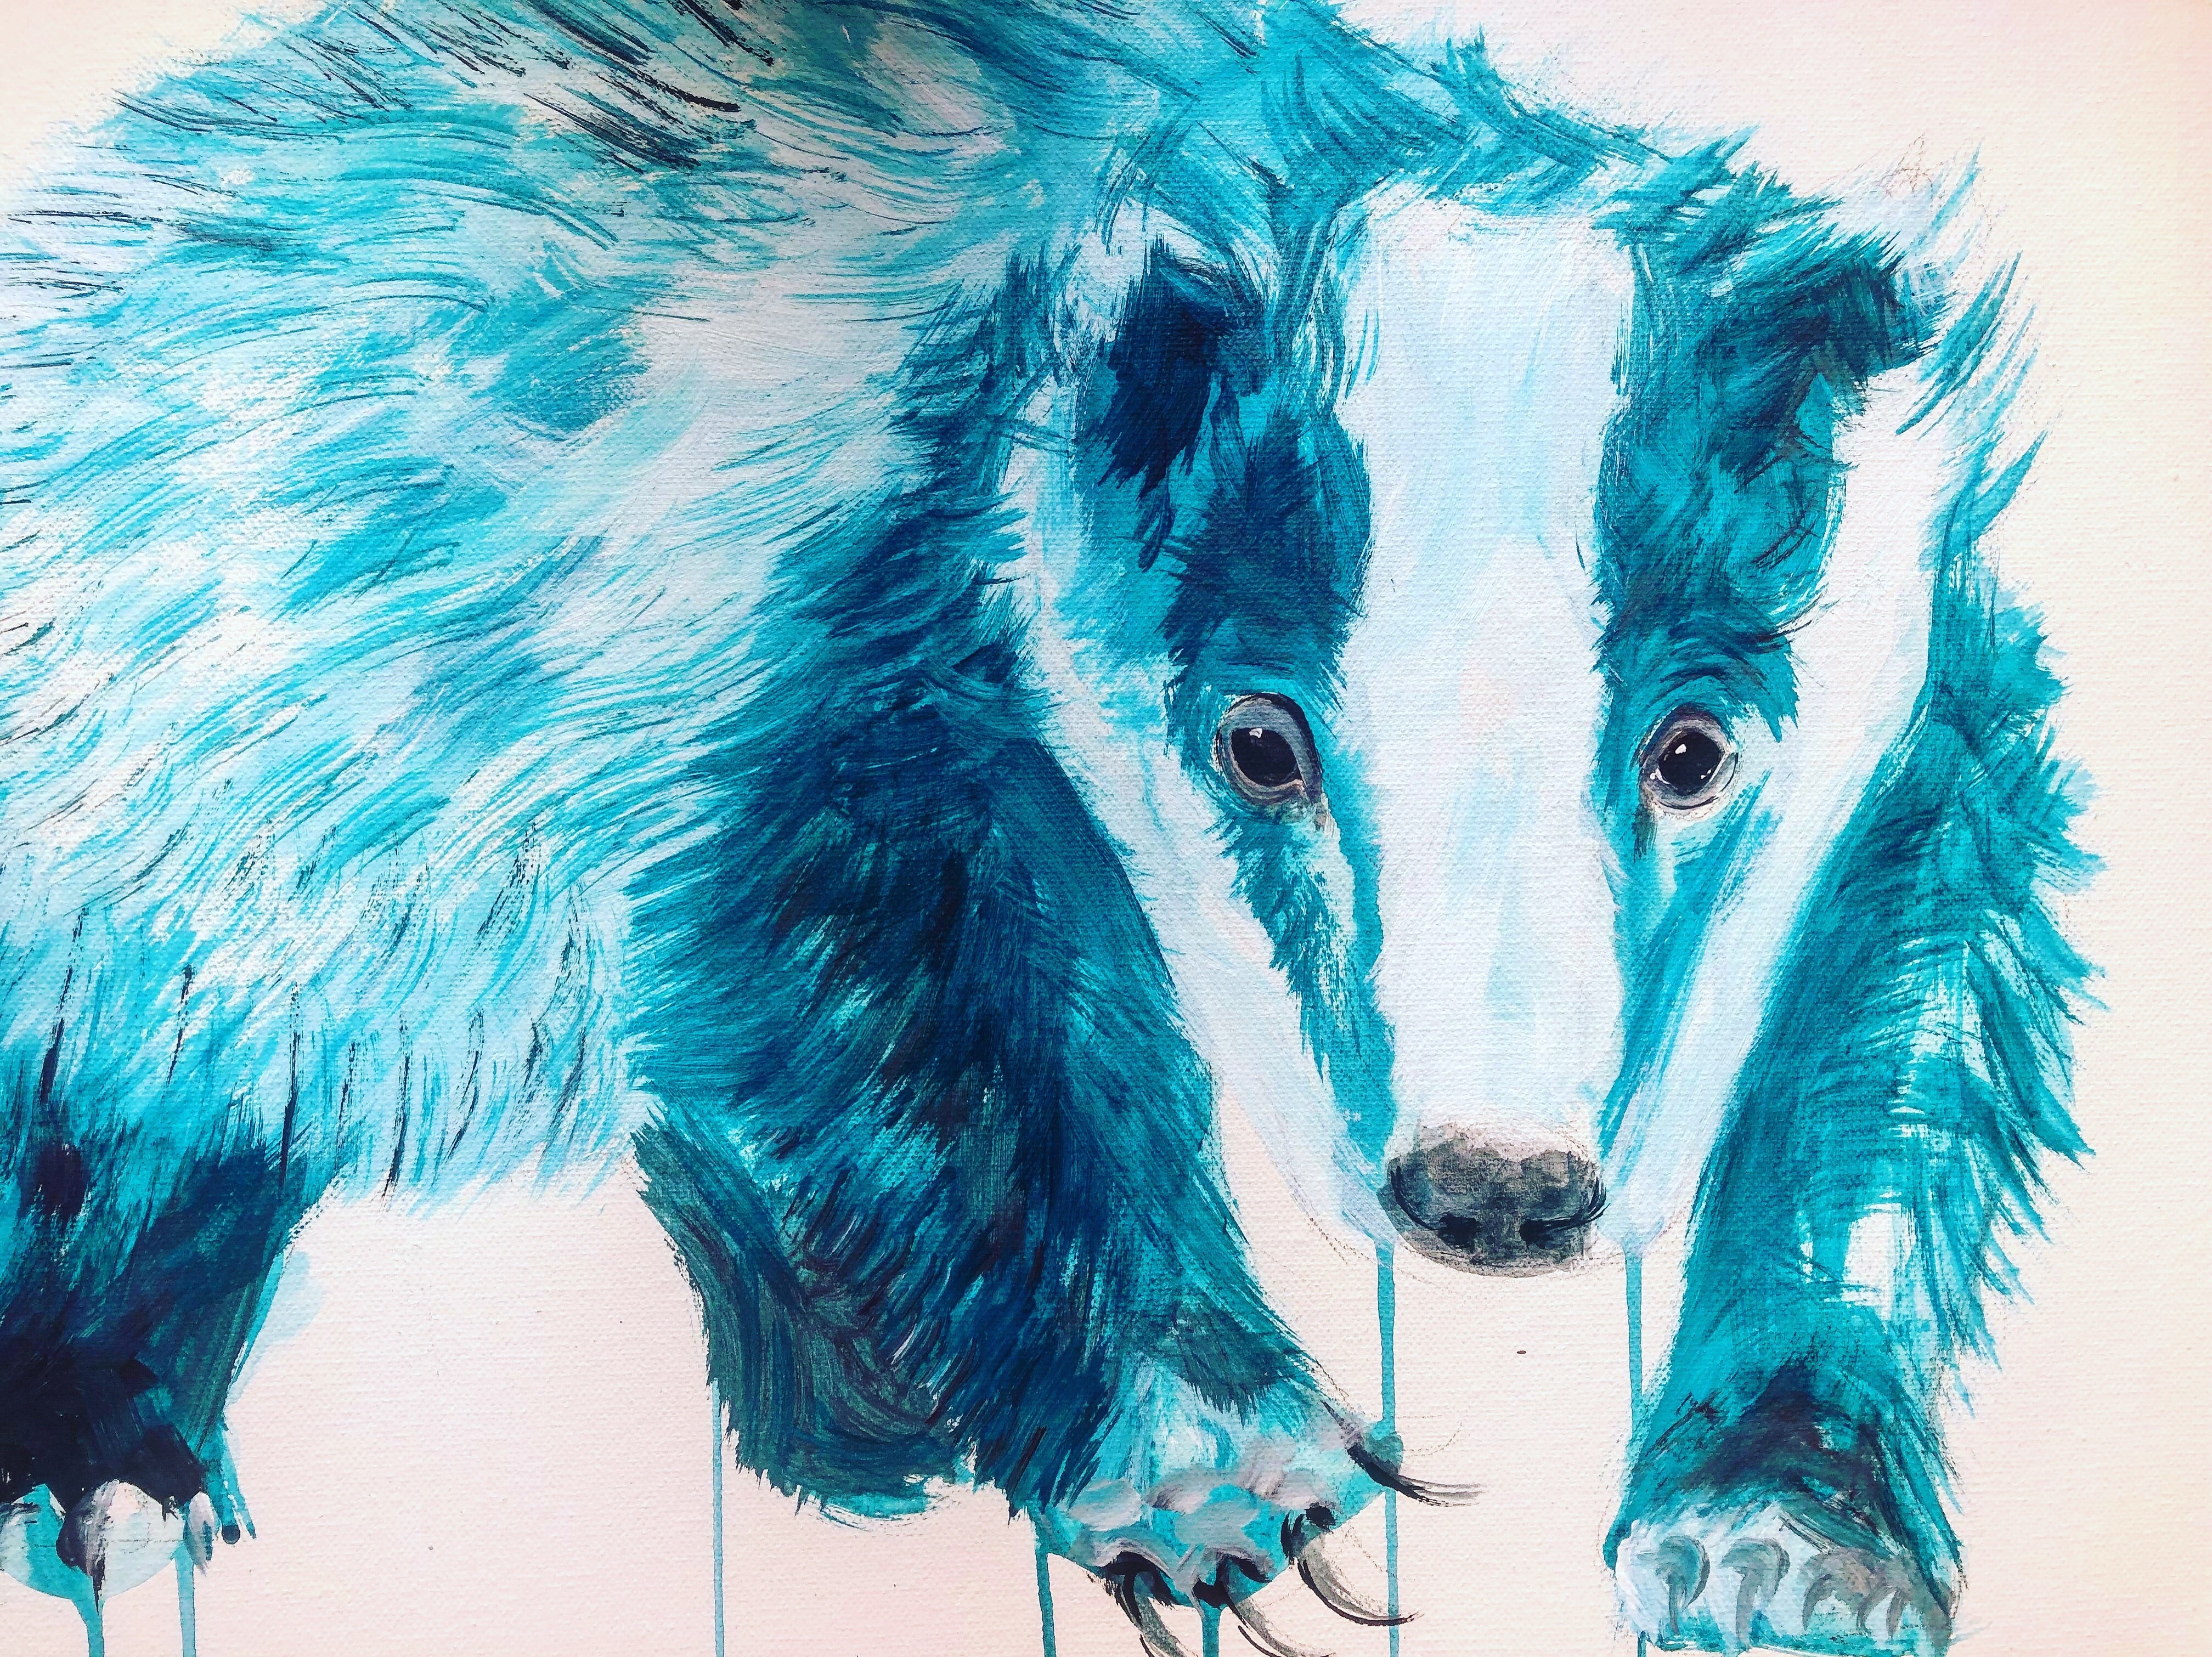 DAY75 #20minuteartchallenge BADGER